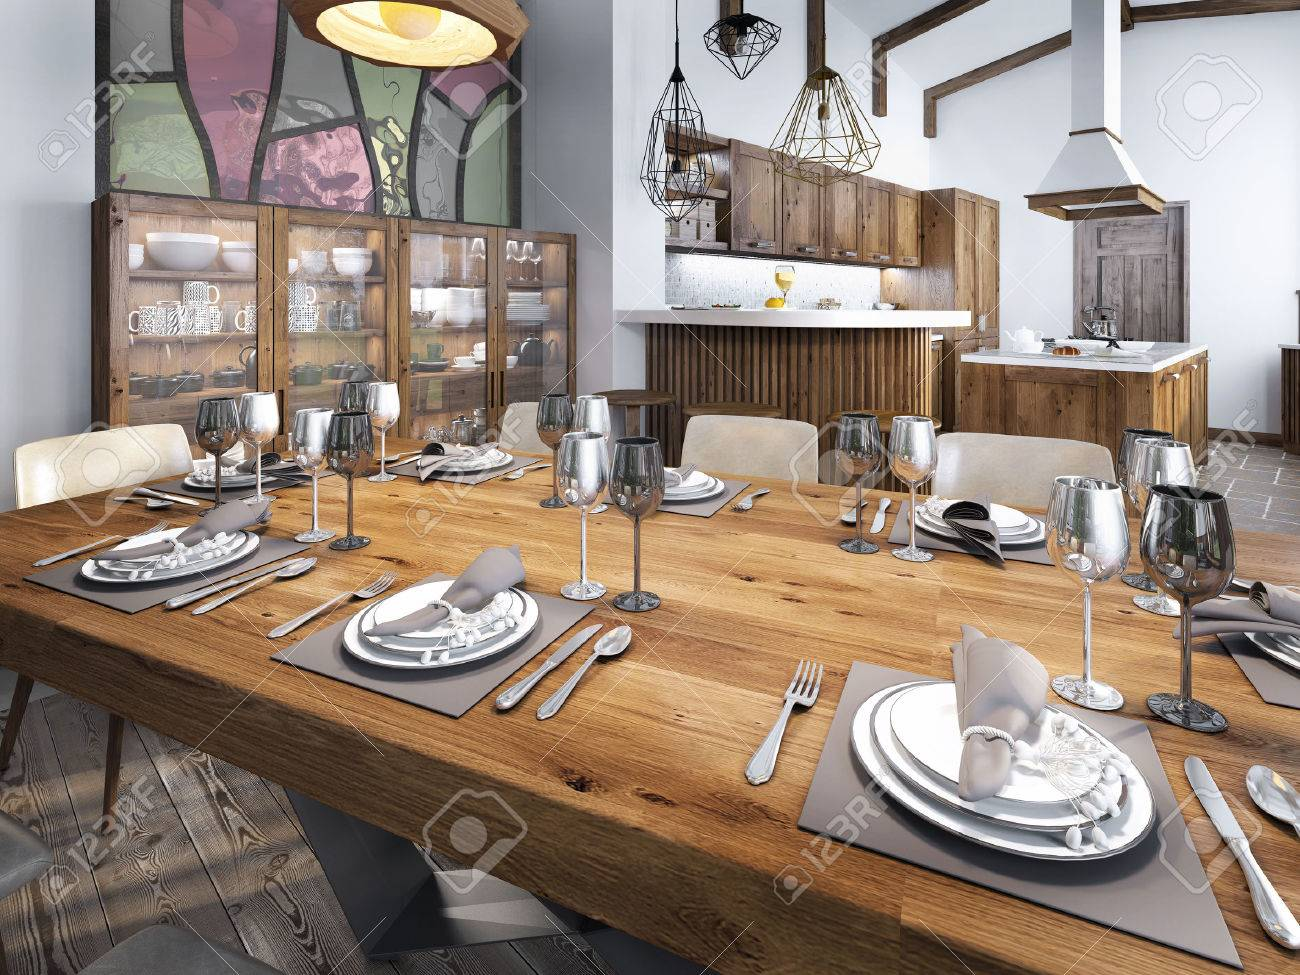 Modern Dining Room Built Into The Kitchen Space. Large Dining Wooden Table  For Eight People